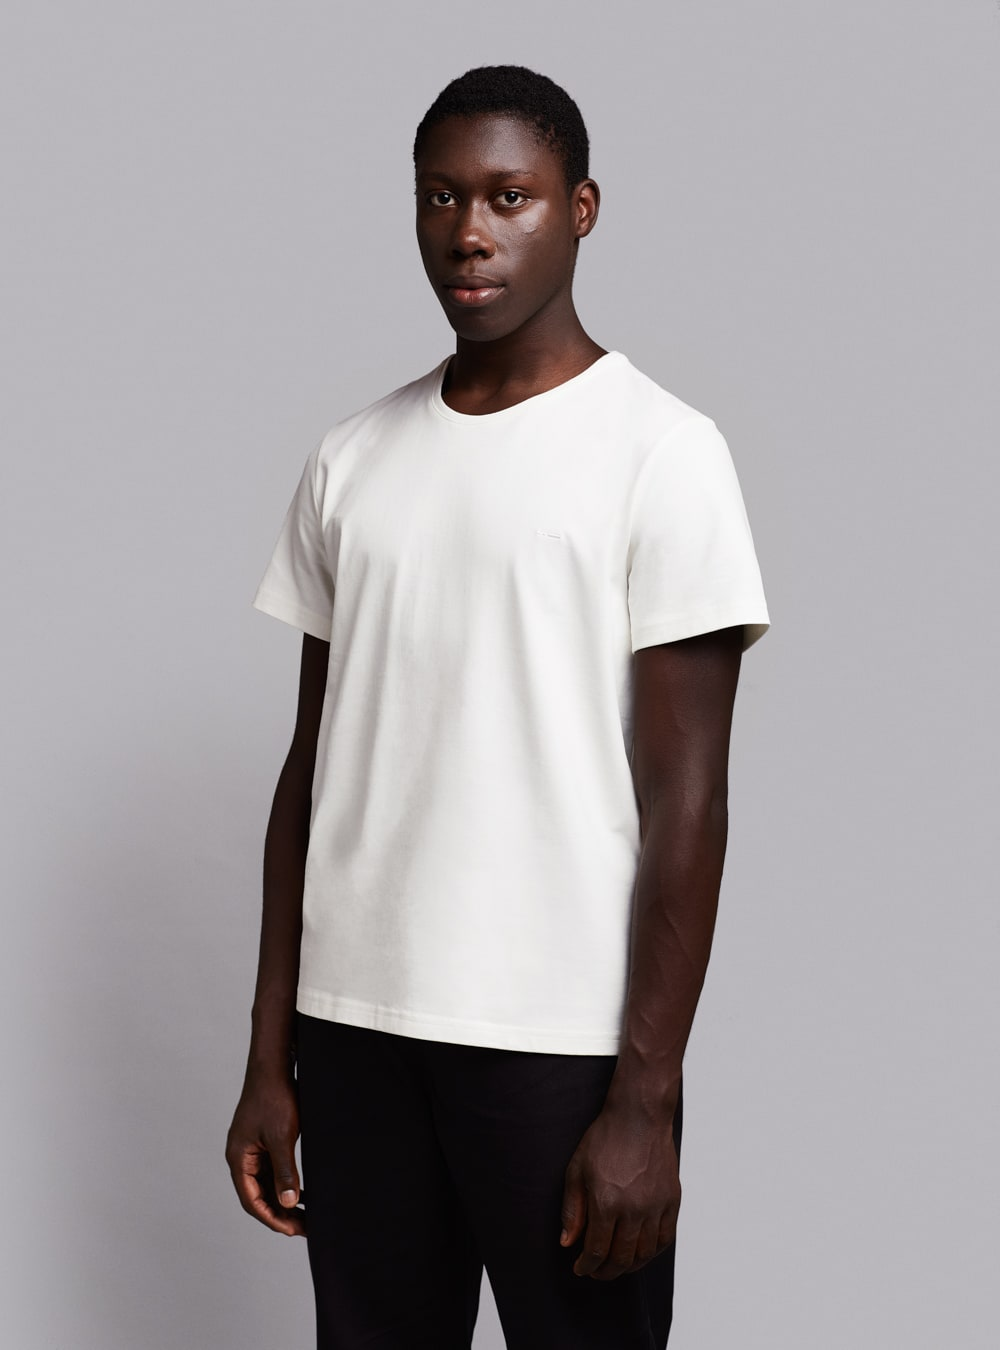 Essential t-shirt (warm white) in organic cotton, made in Portugal by wetheknot.